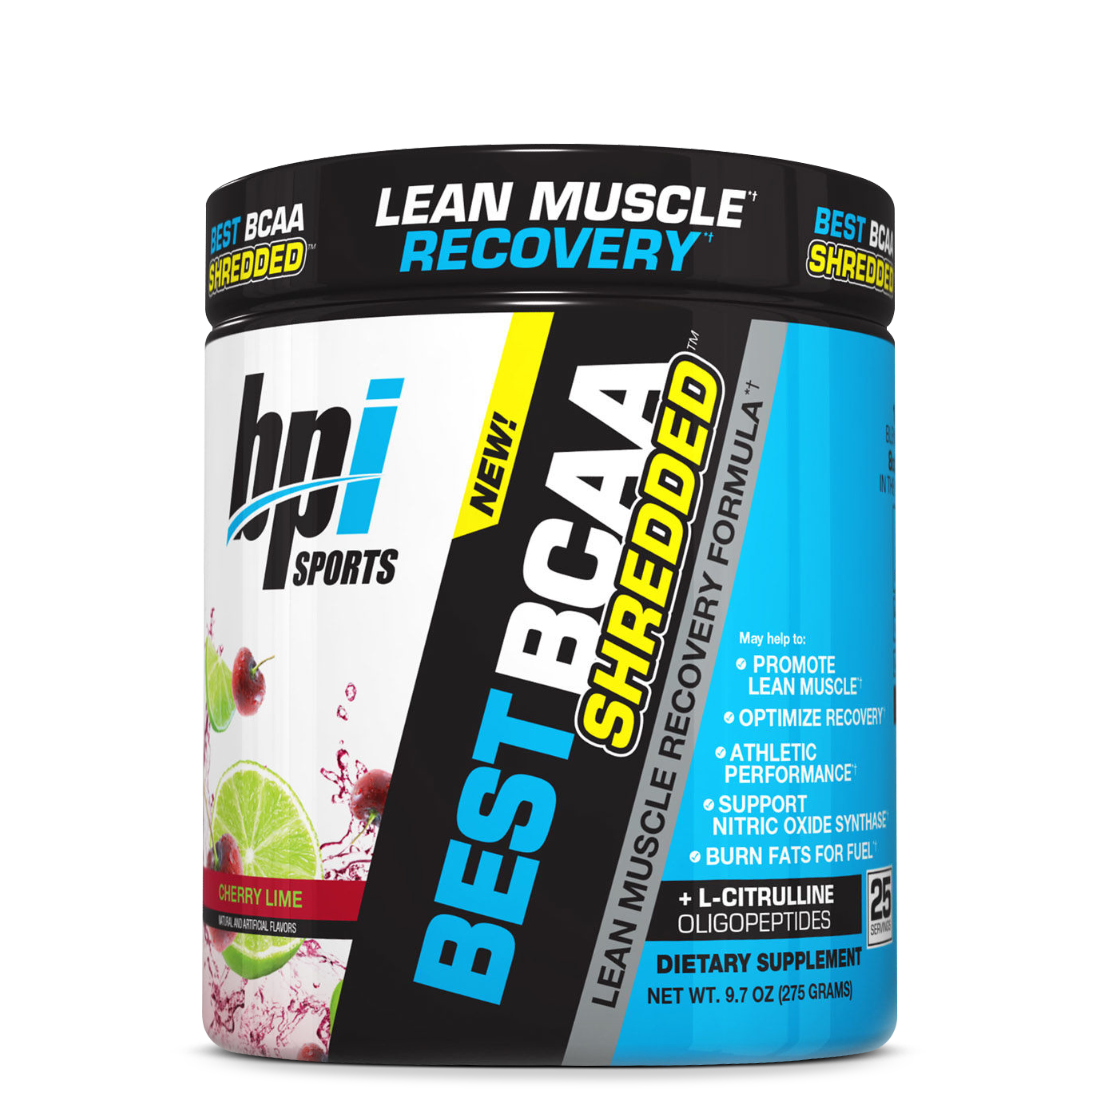 Lean muscle recovery formula